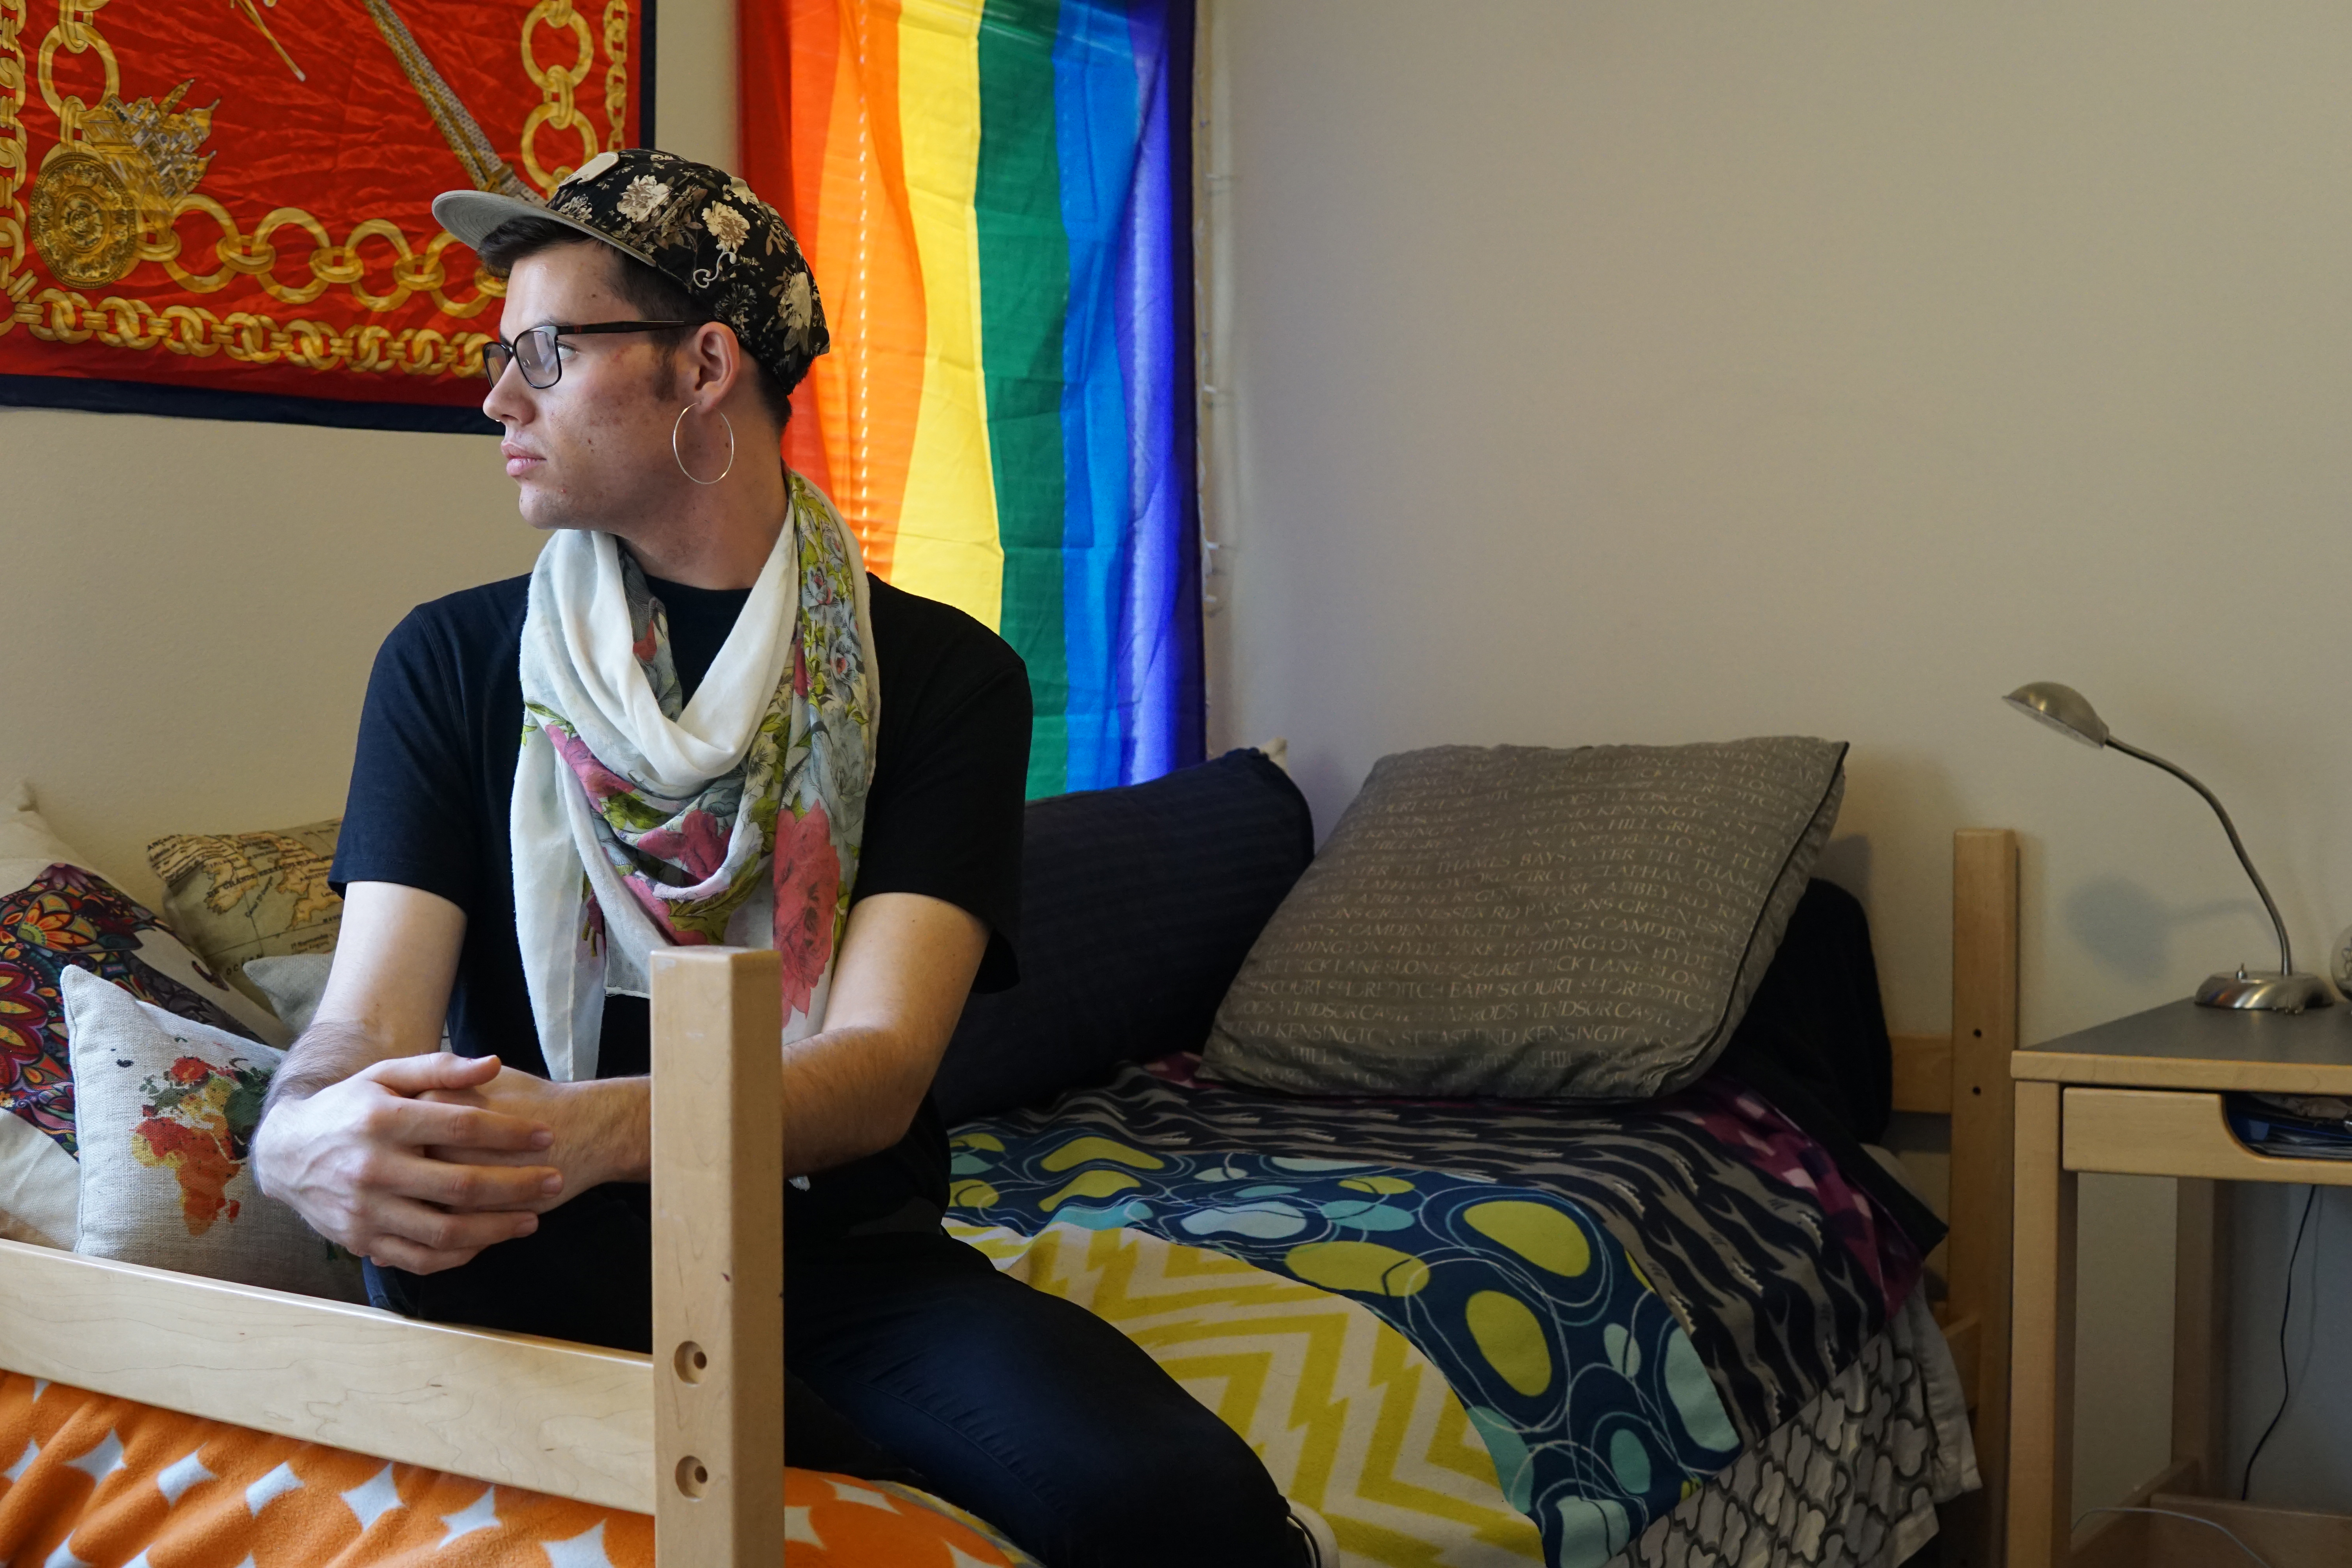 Finding a Place to Call Home: Students Struggle to Find Gender-Inclusive Housing on Campus